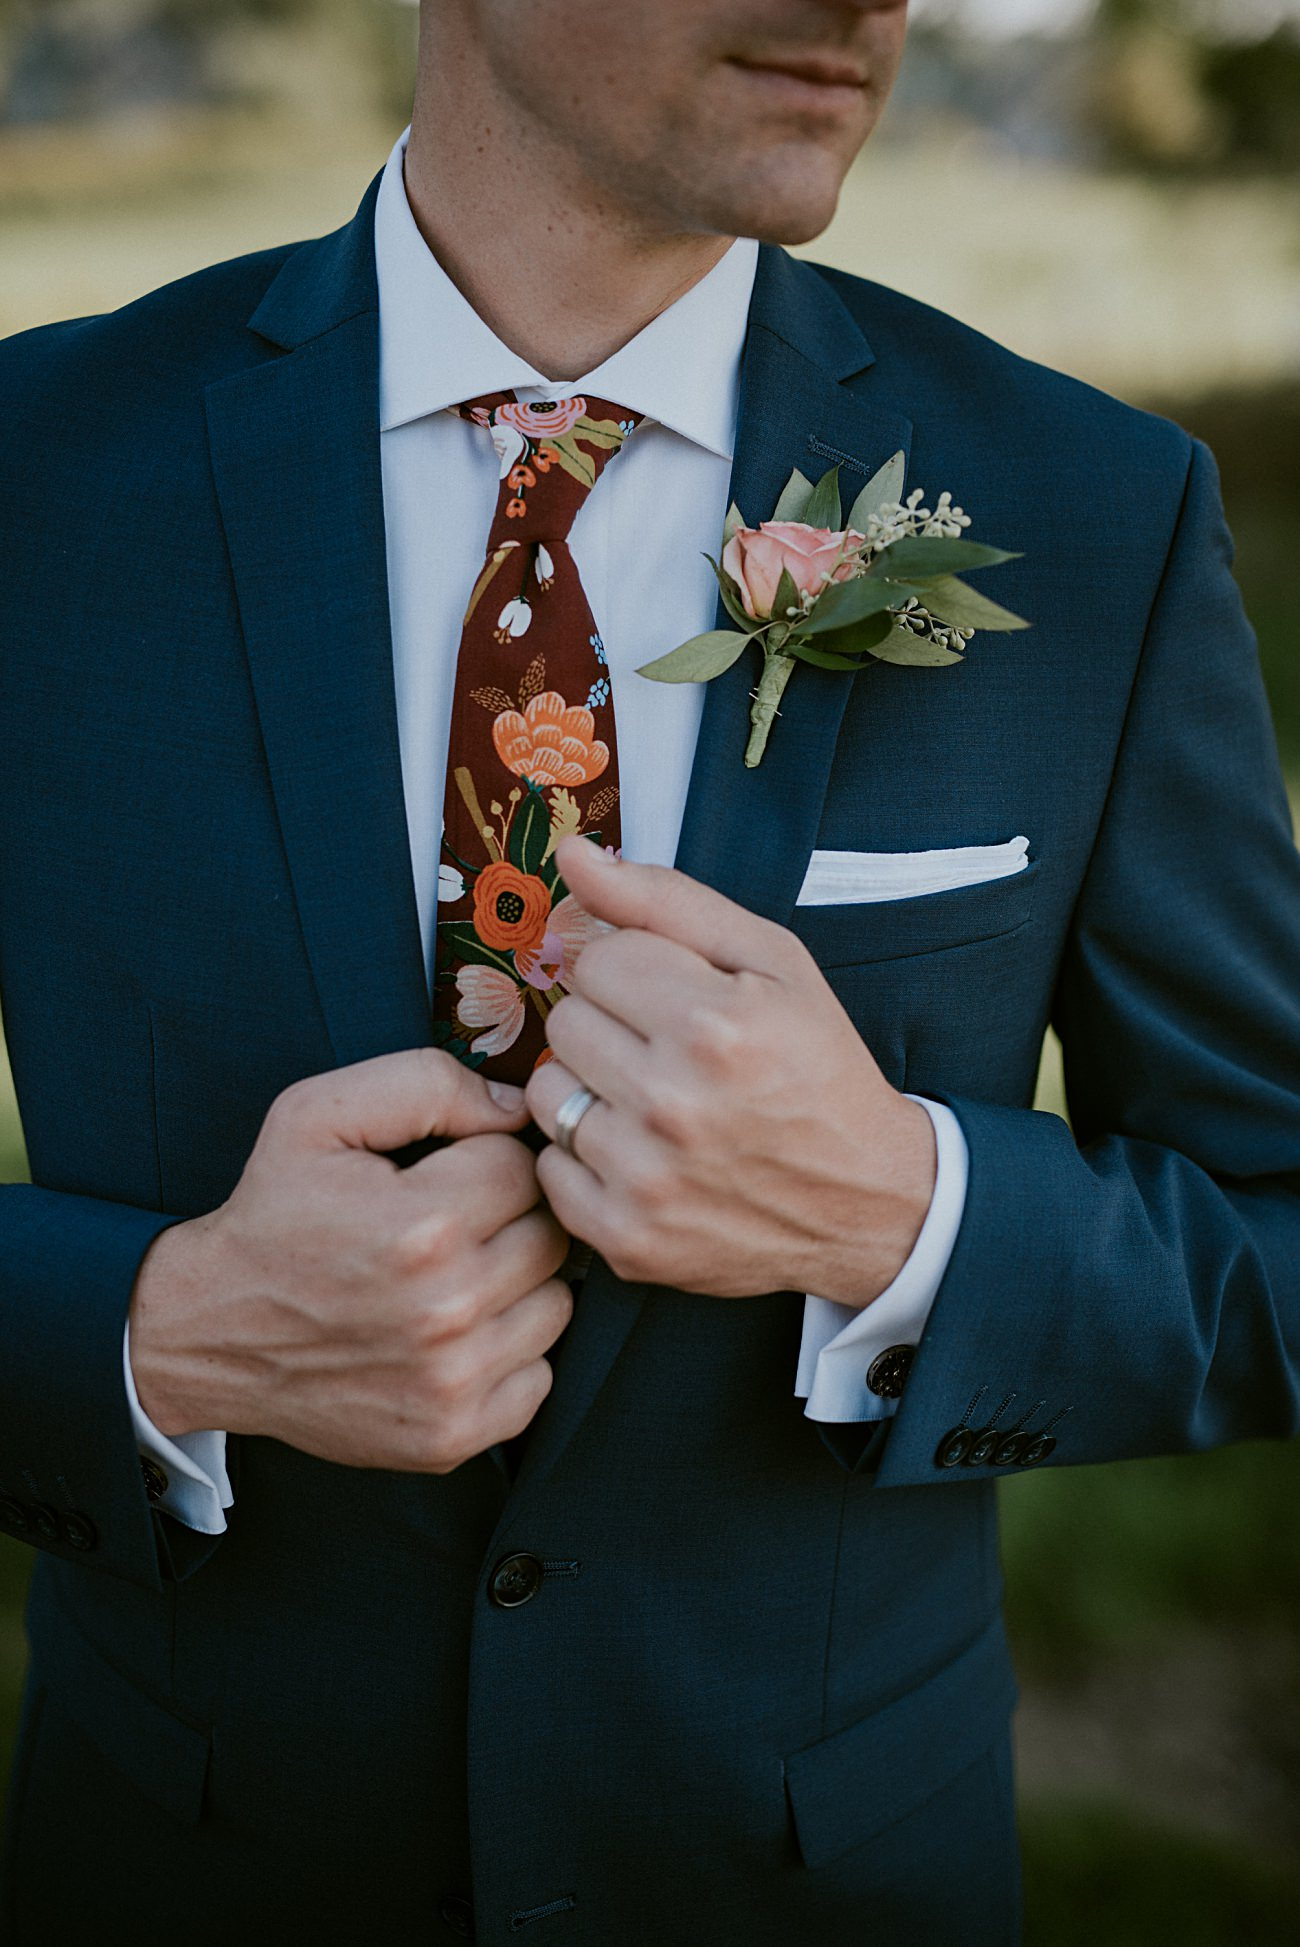 navy groom suit, navy groomsman suits, floral ties for wedding party, wedding details